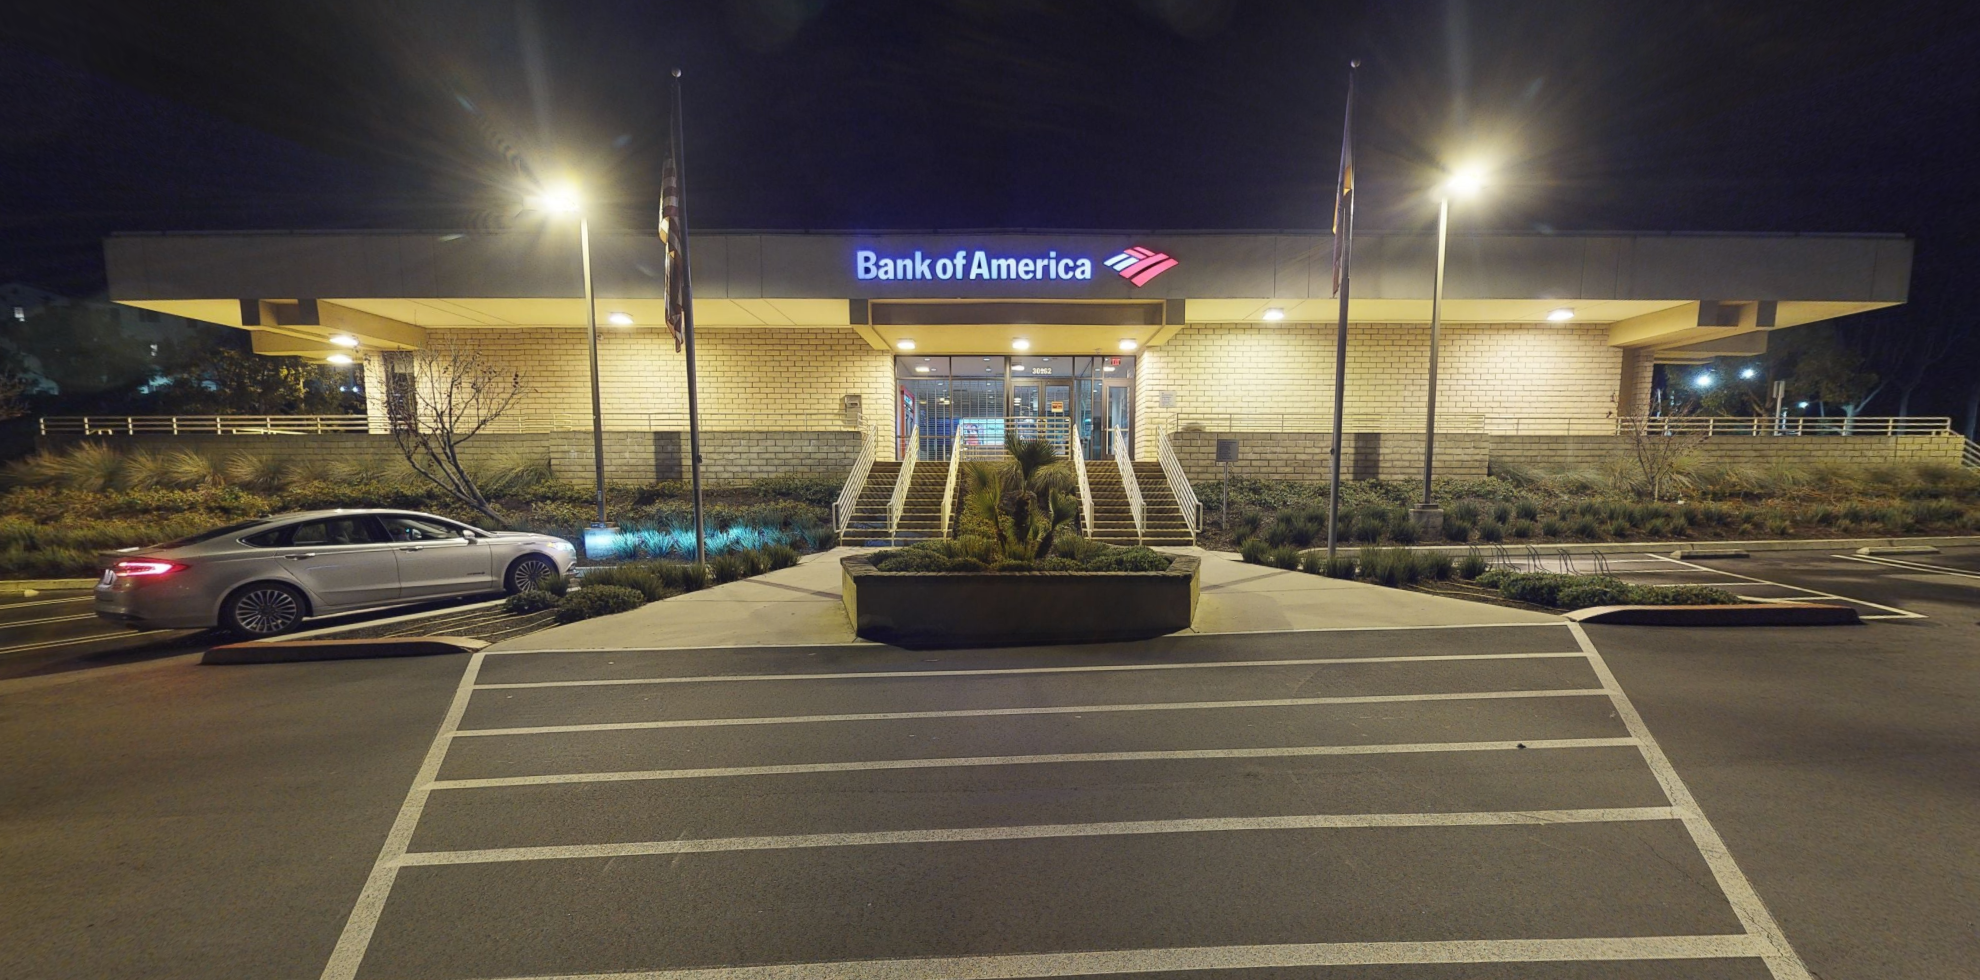 Bank of America financial center with drive-thru ATM | 30162 Crown Valley Pkwy, Laguna Niguel, CA 92677